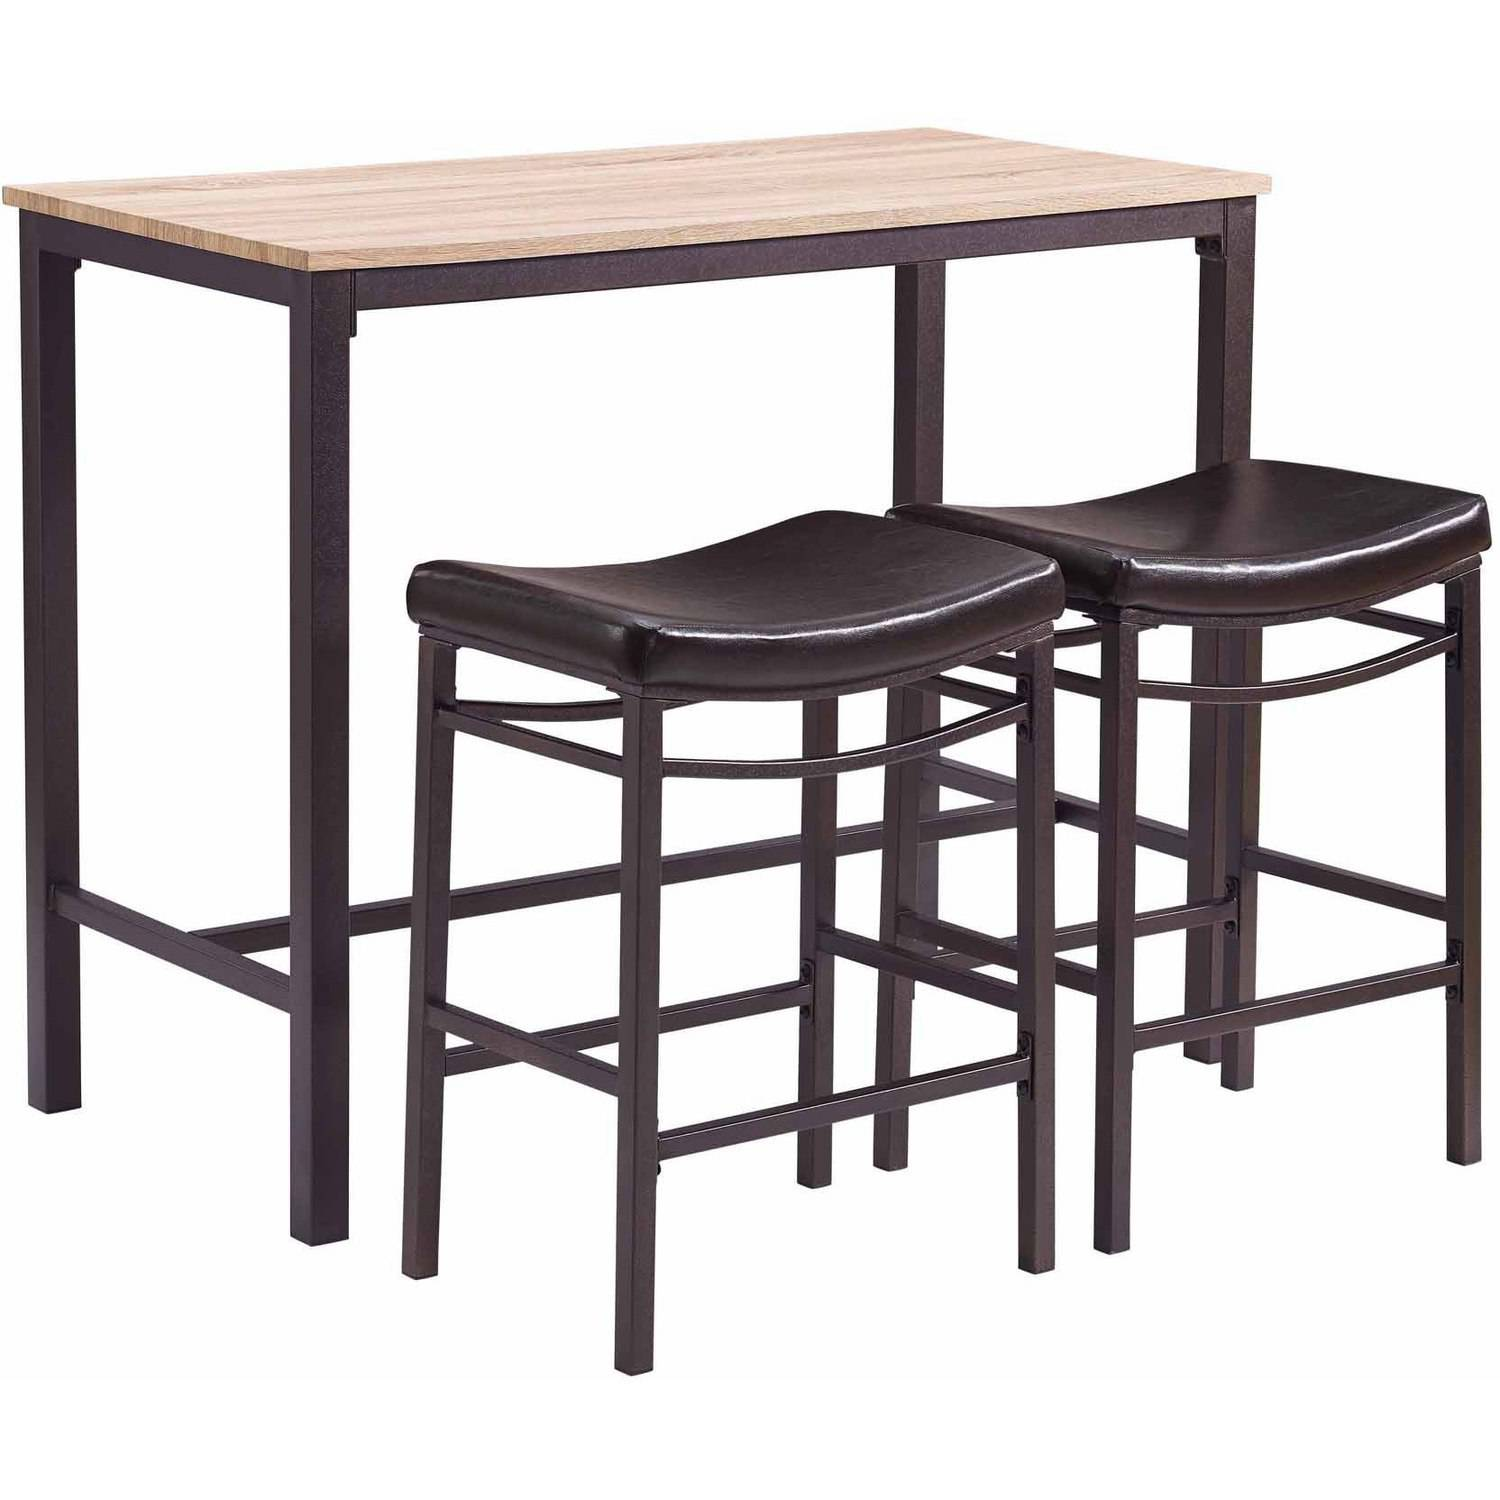 Linon Betty 3-Piece Pub Set including Table and 2 Stools